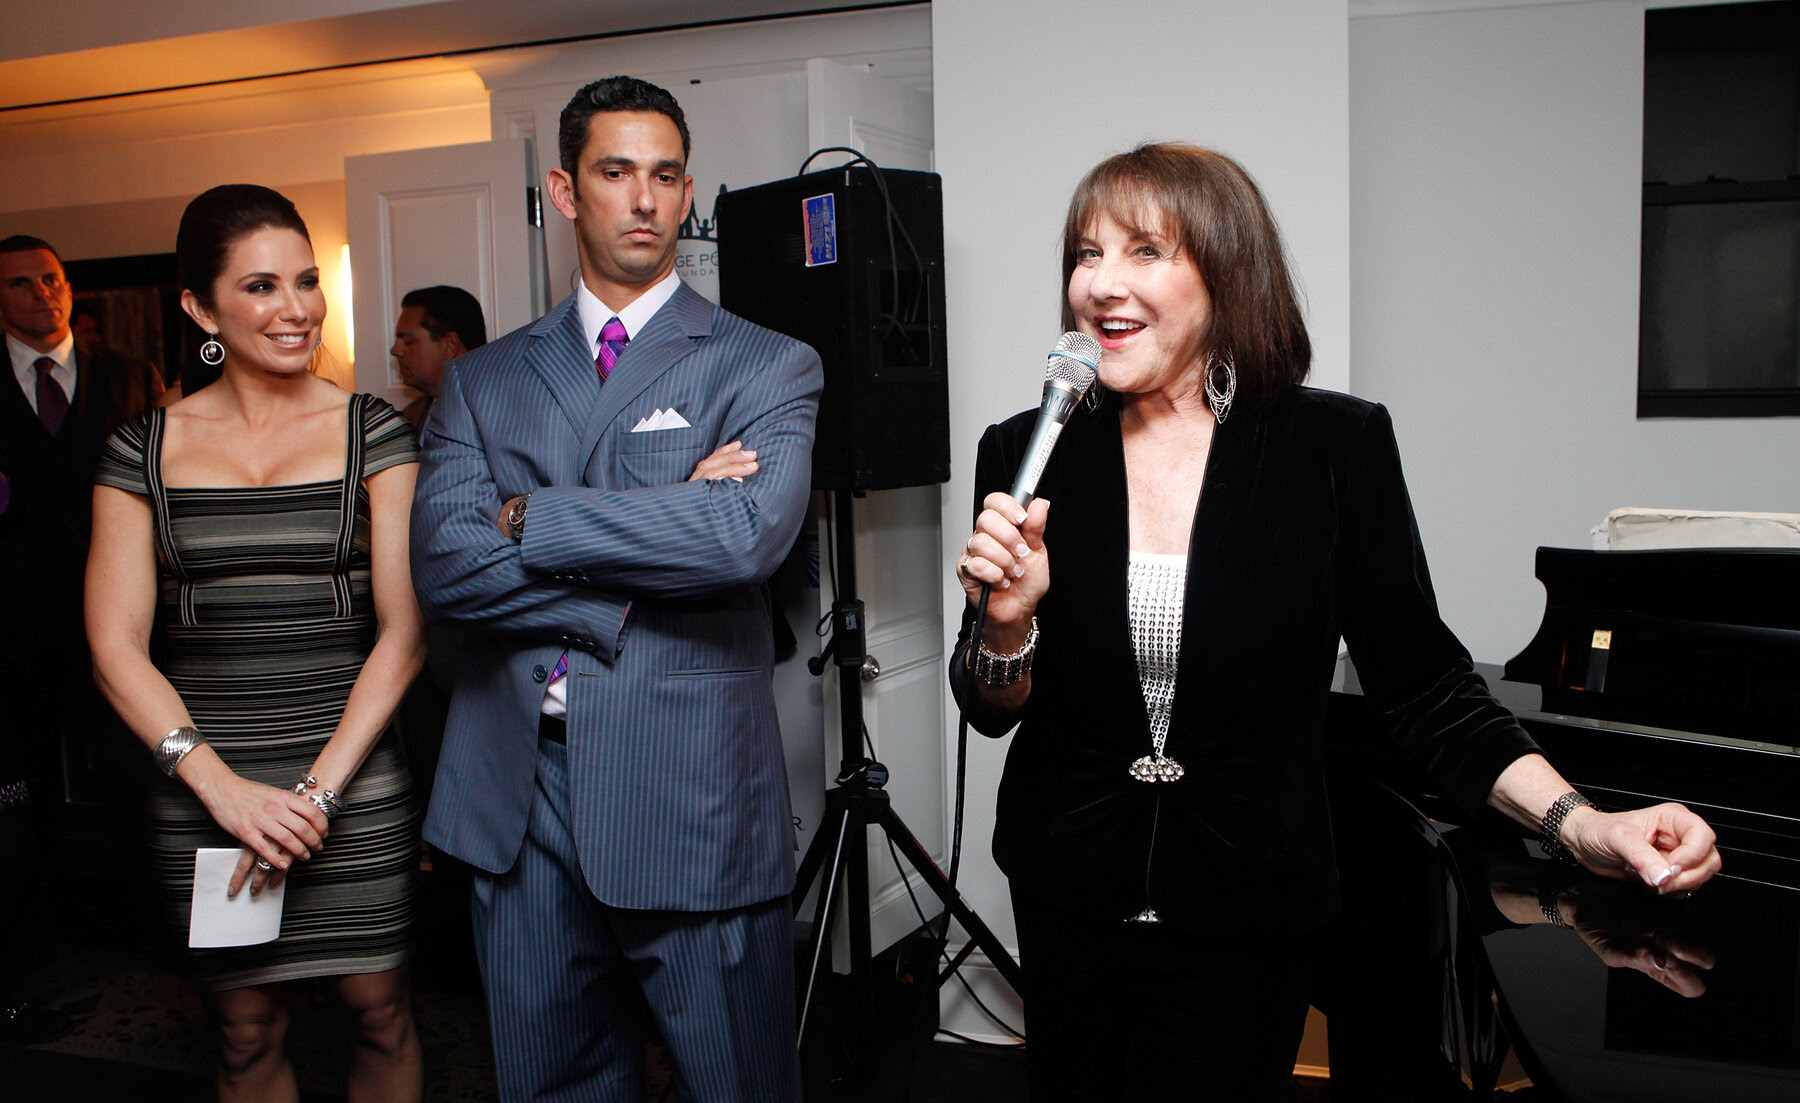 Suzyn Waldman, who has been a fixture with the Yankees since 2005, is a role model for many women in broadcasting. She sees progress but is surprised things haven't changed faster.